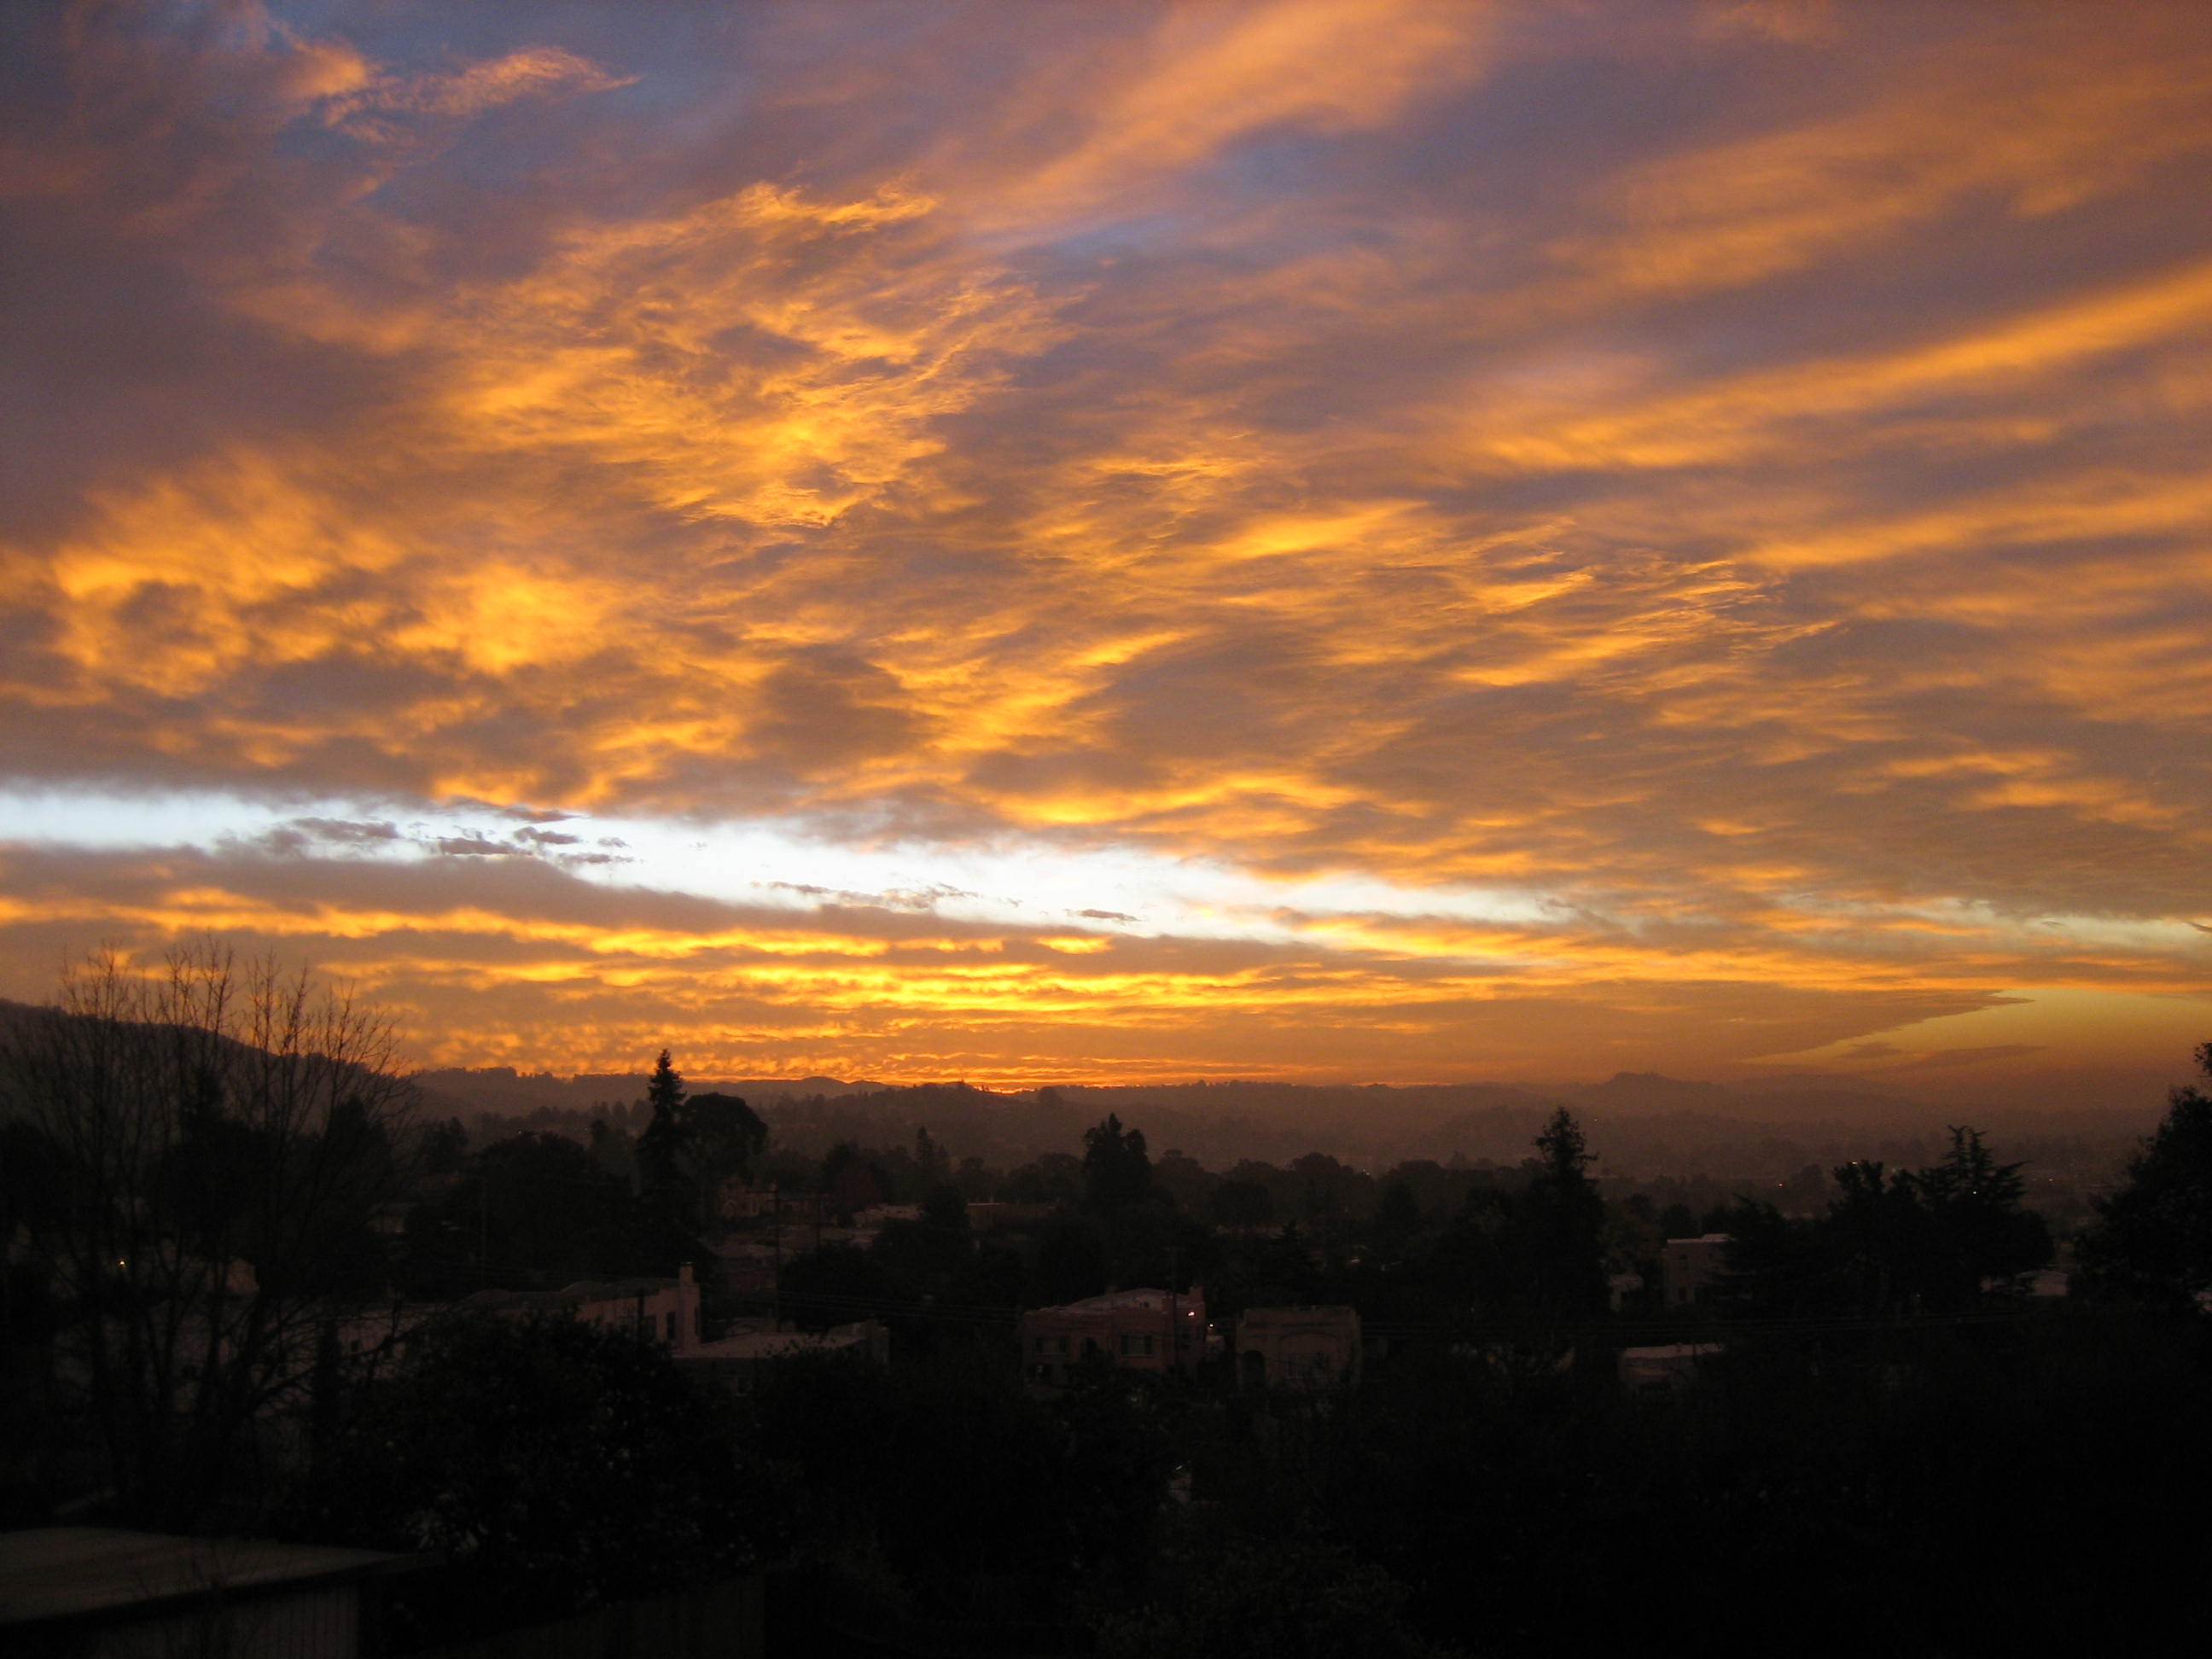 The sun rises over Oakland, Calif. Photo by: Daniel Olsen